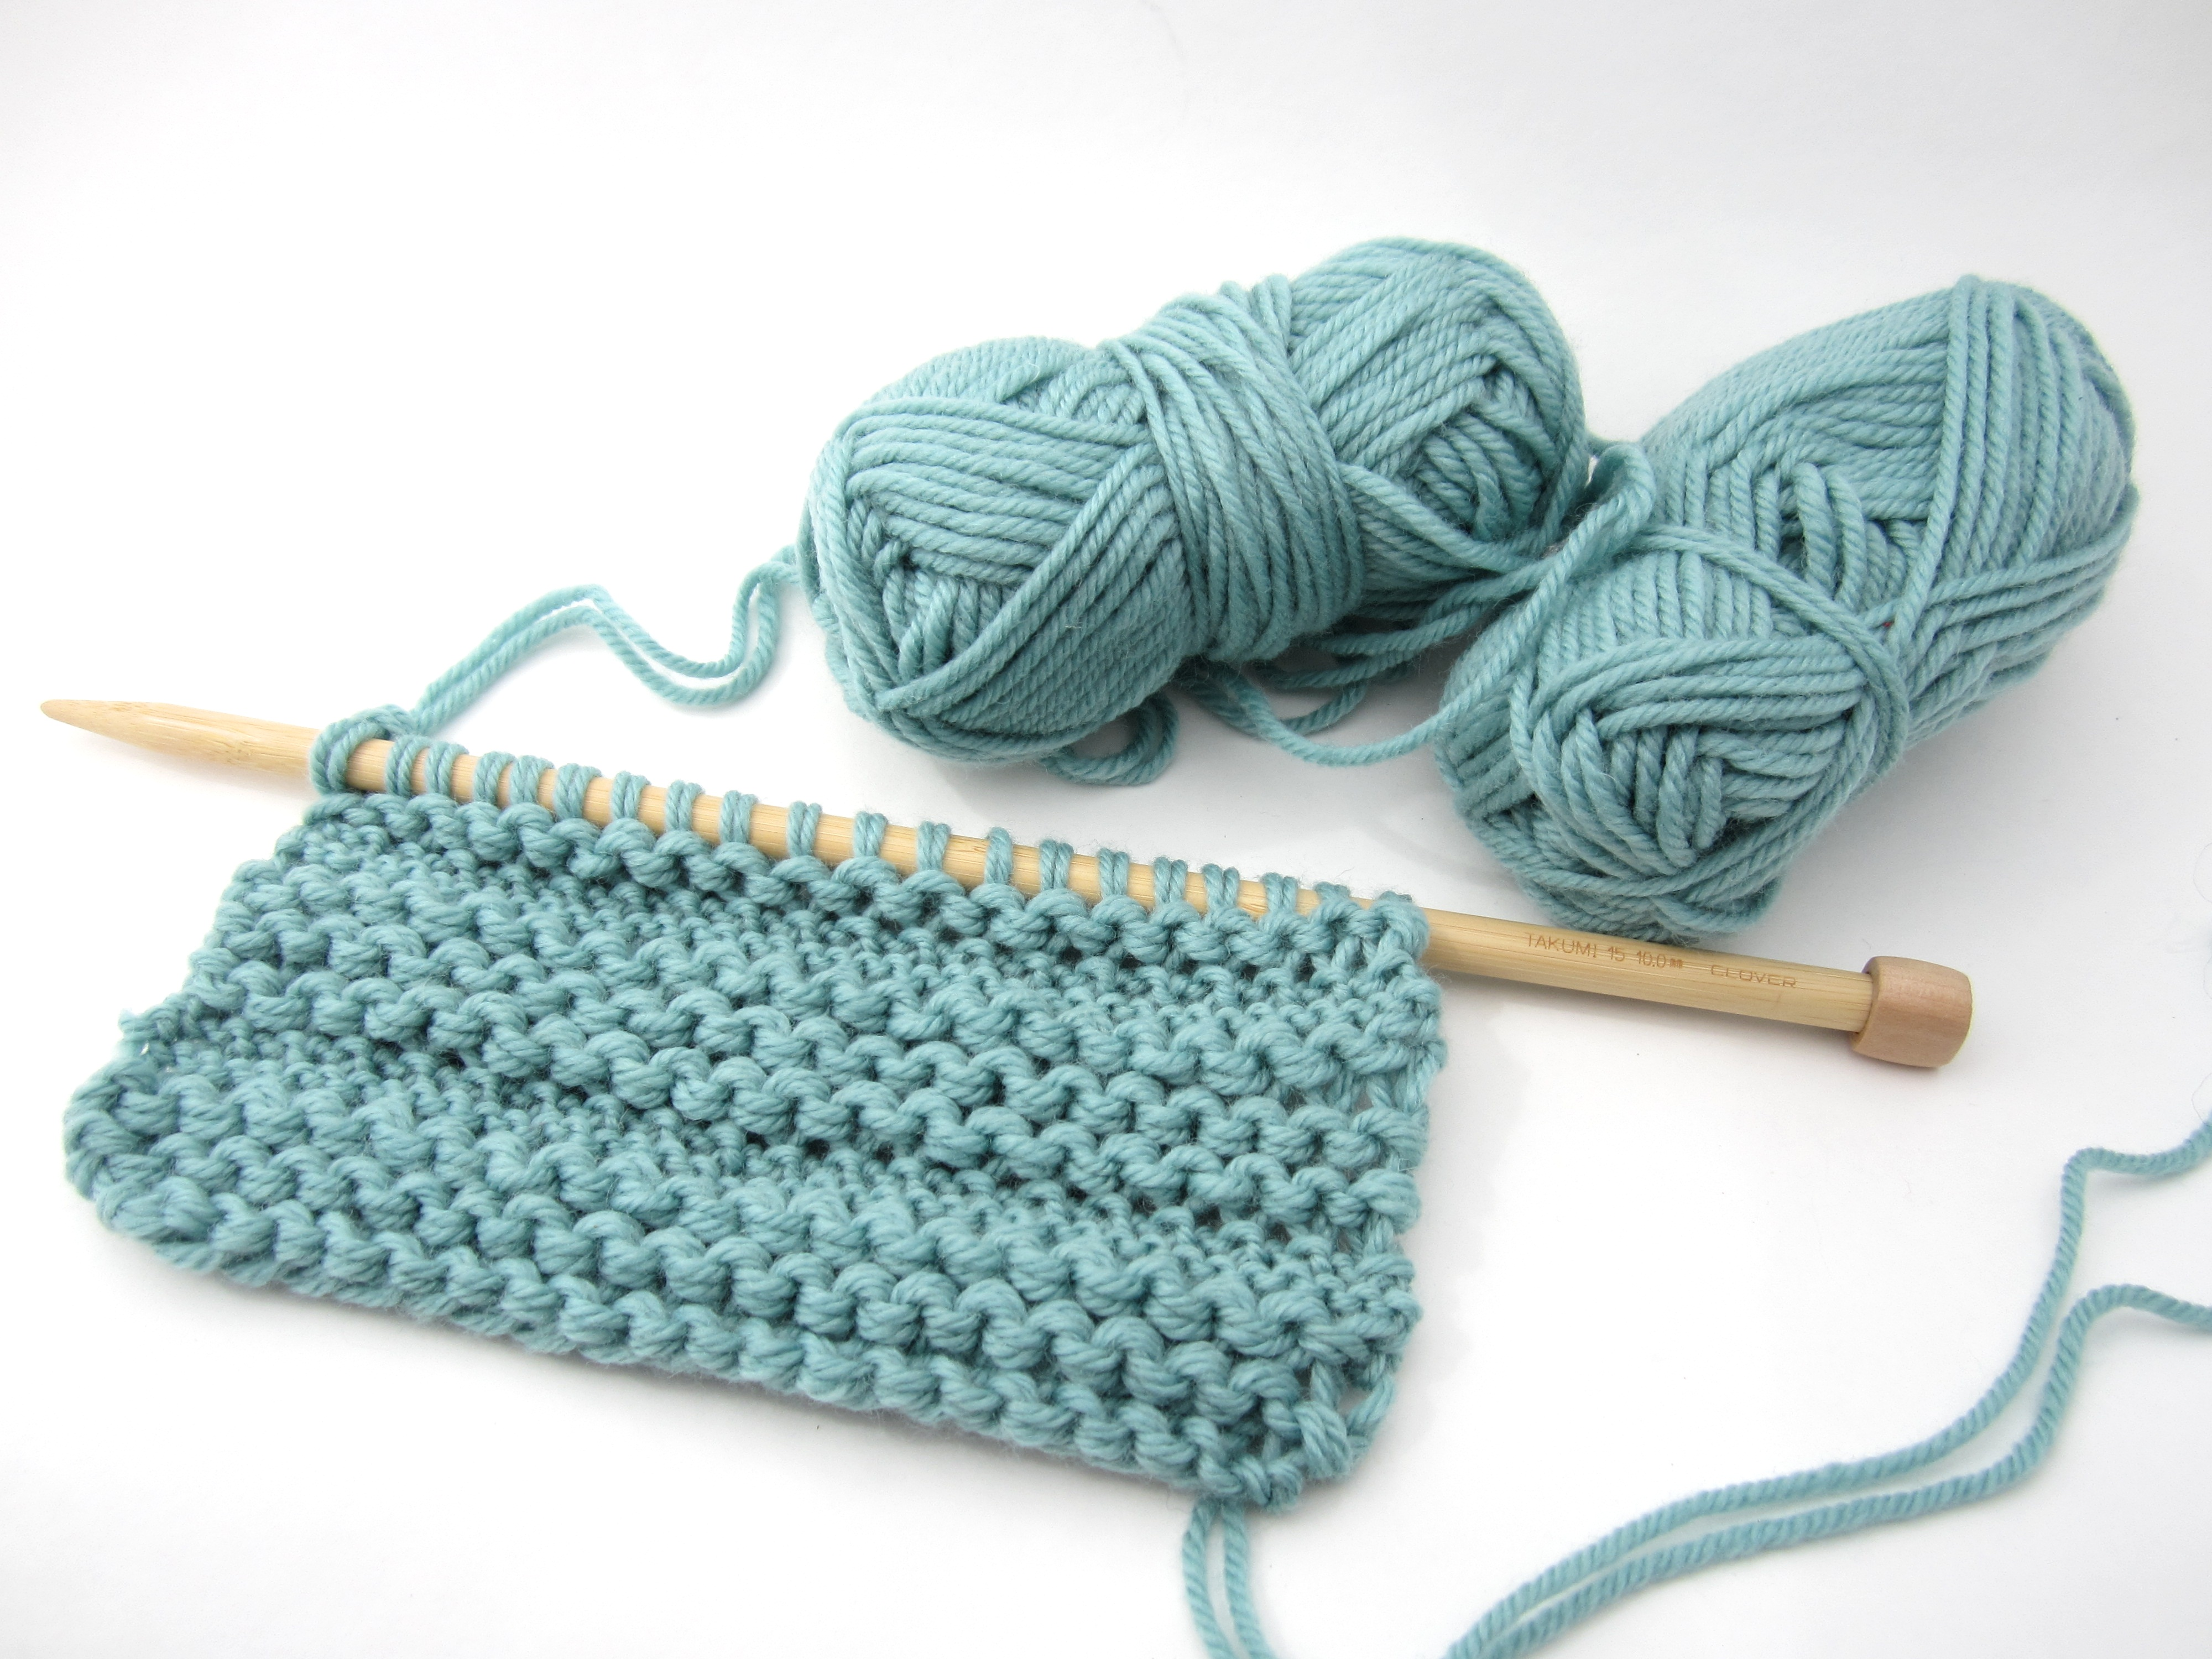 Textured Knitting : Textured stripes